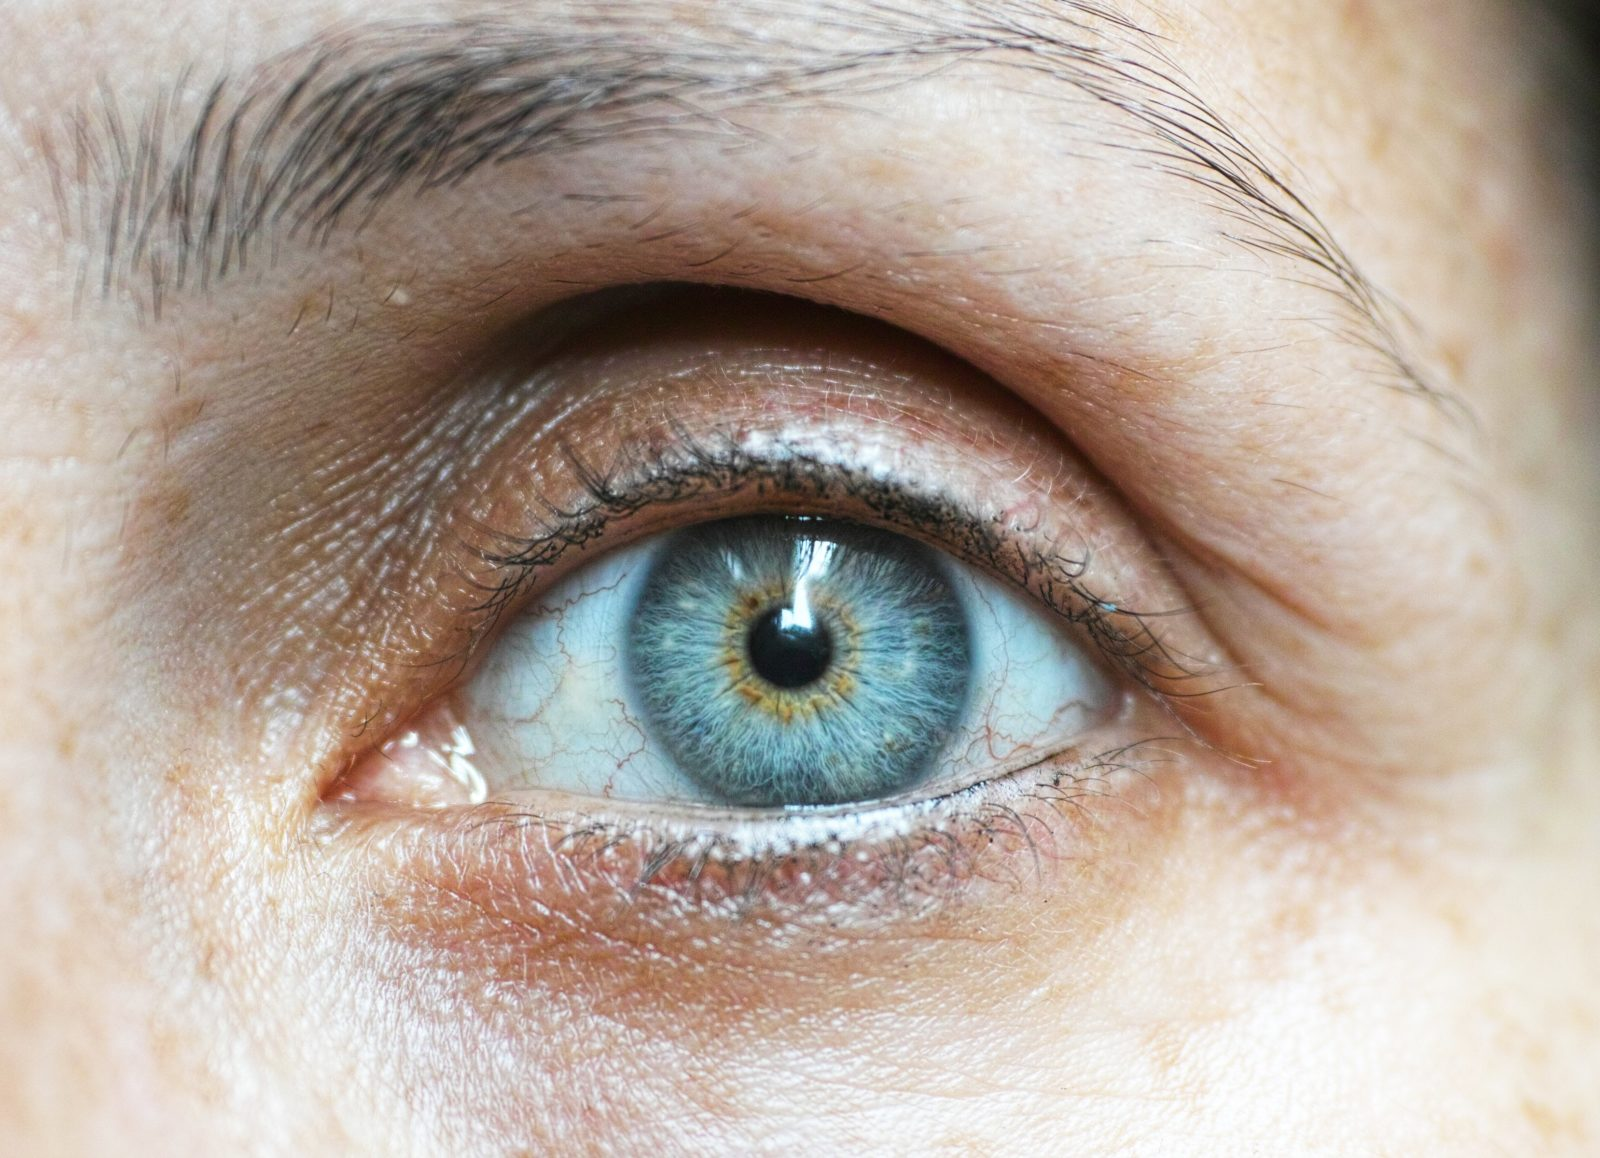 Can contact lenses scratch your eye?